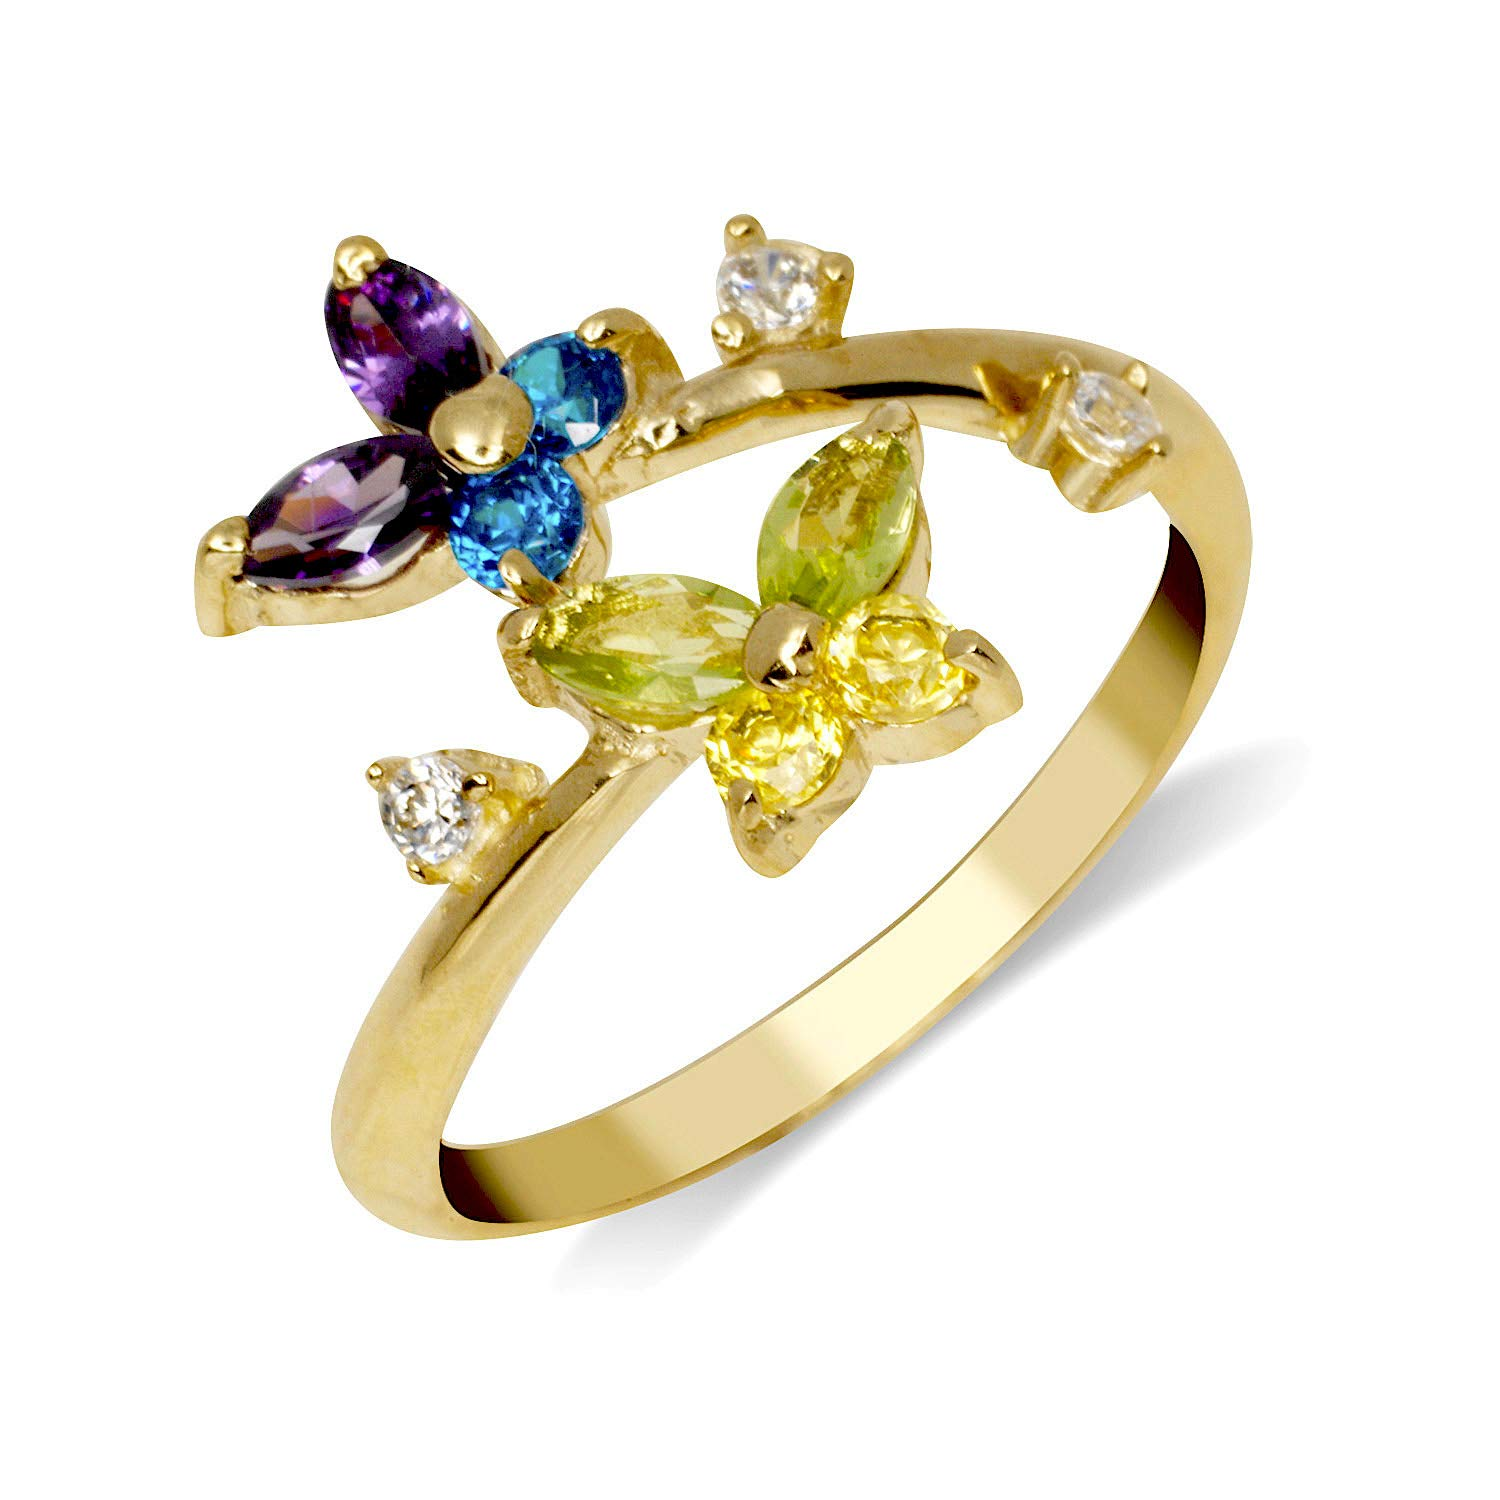 JewelryWeb Solid 10K Yellow or White Gold Butterfly Adjustable Multi-Color Cubic Zirconia Toe Ring (12mmx15mm) (White-Gold)